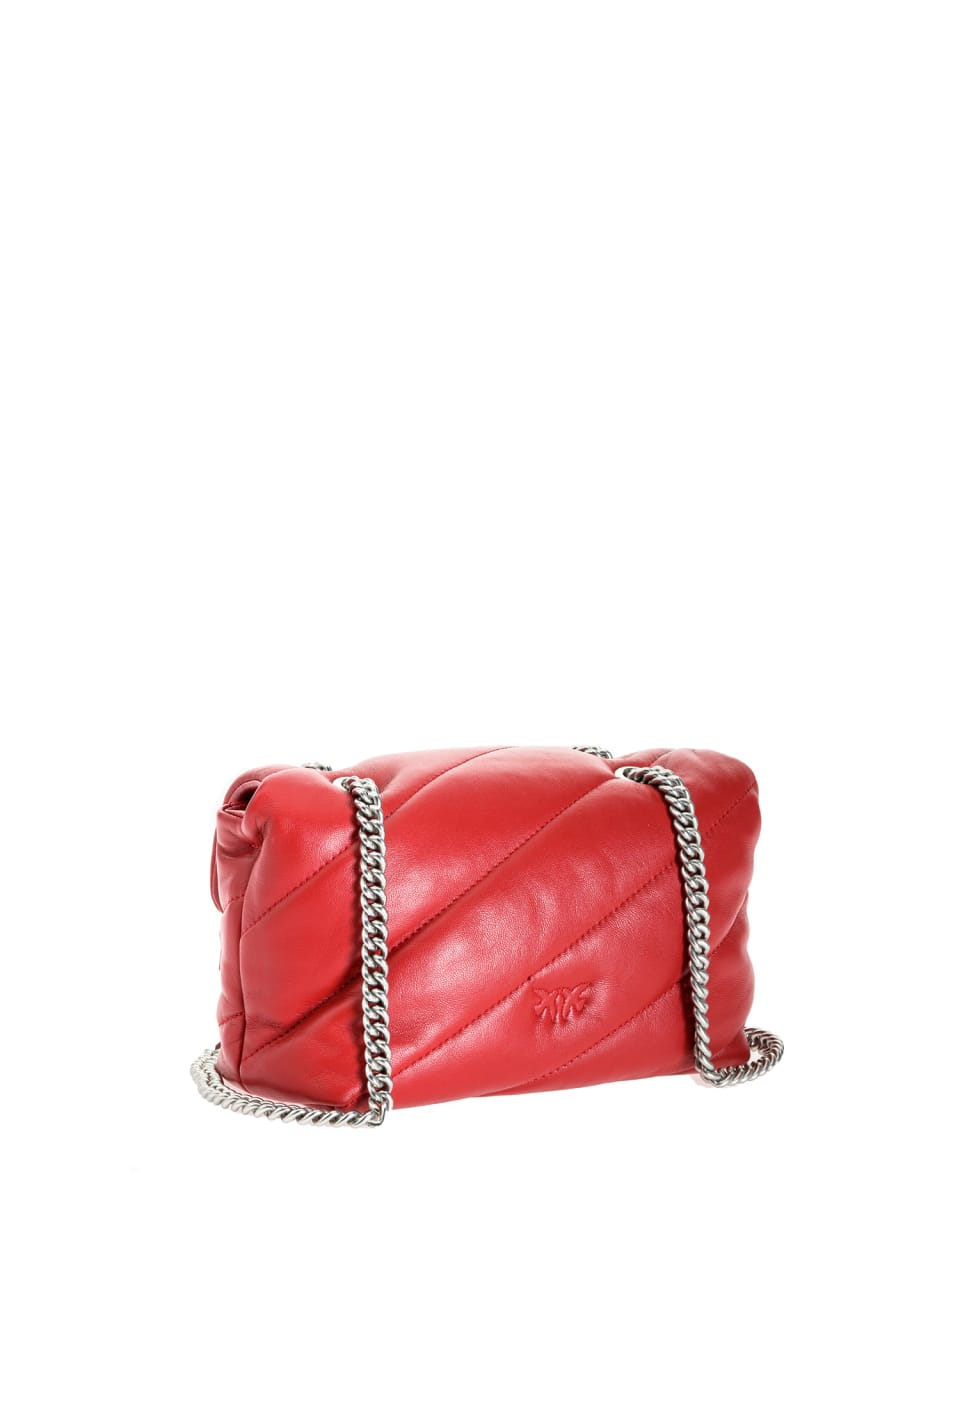 Mini Love Bag Puff Maxi Quilt in nappa leather